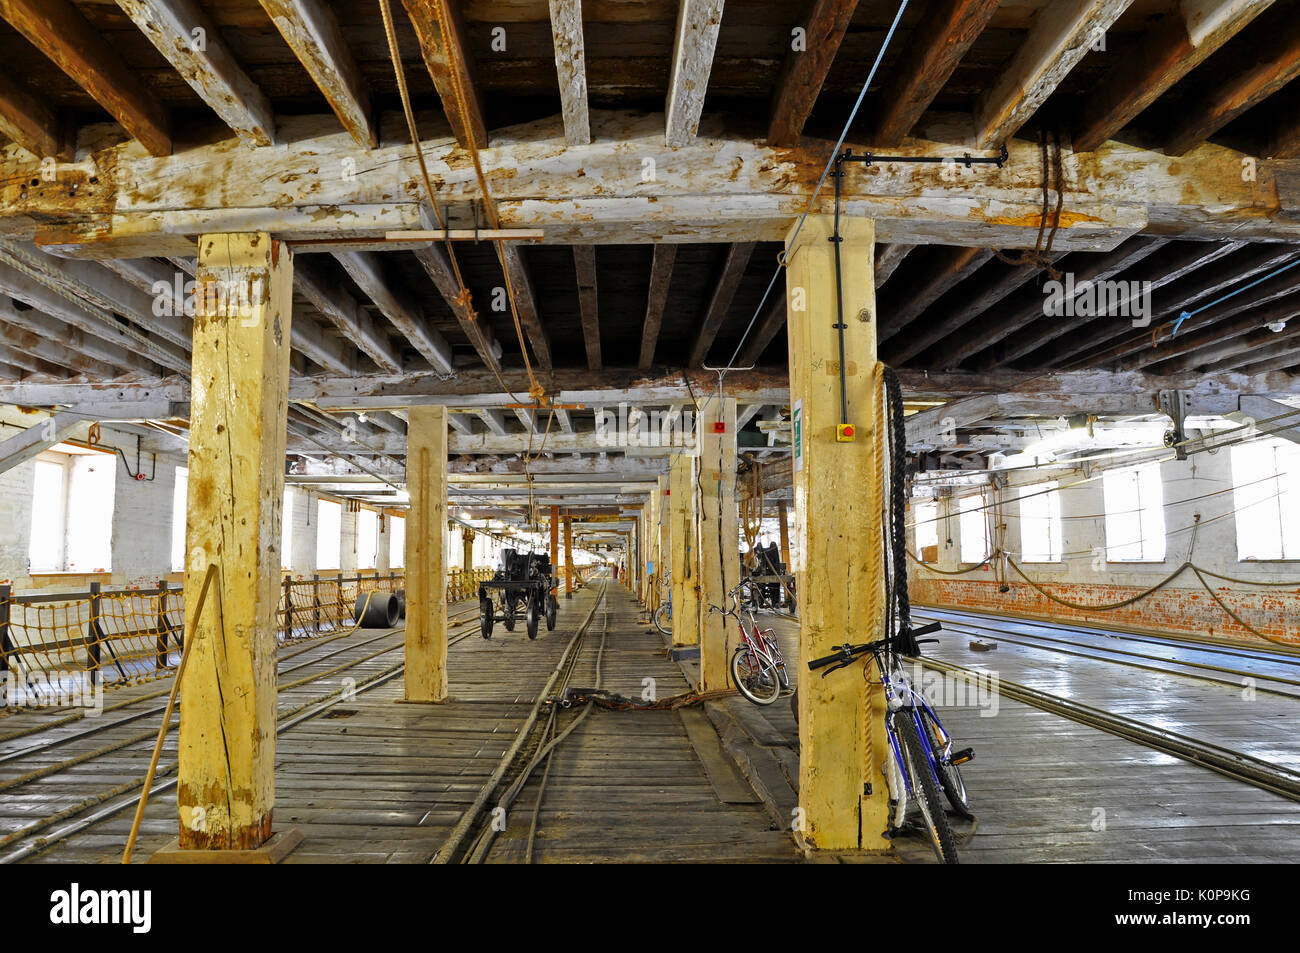 Interior of the Victorian Ropery Chatham Historic Dockyard, rope factory where rope was manufactured for maritime uses. Long wooden building - Stock Image